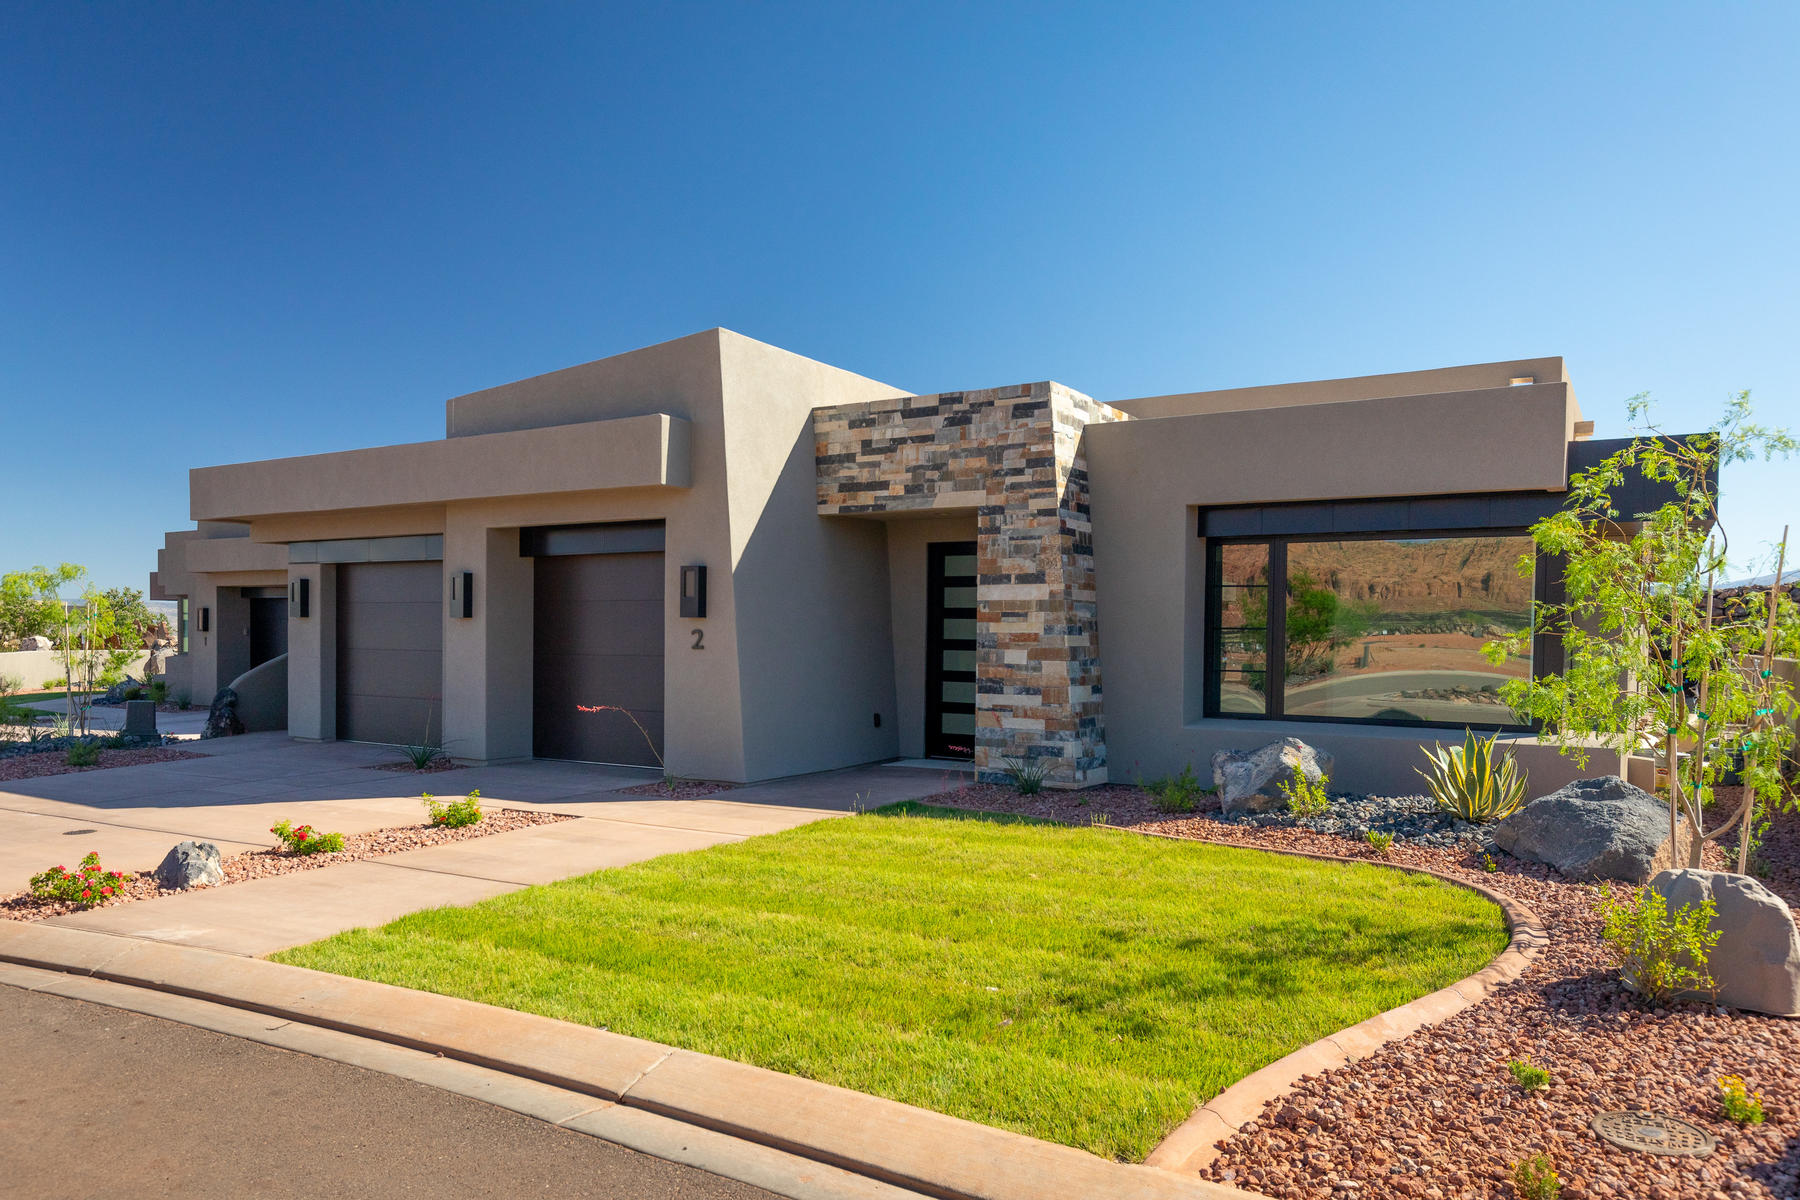 Single Family Homes for Sale at Encanto Resort 1355 E Snow Canyon Pkwy Lot 2, Ivins, Utah 84738 United States